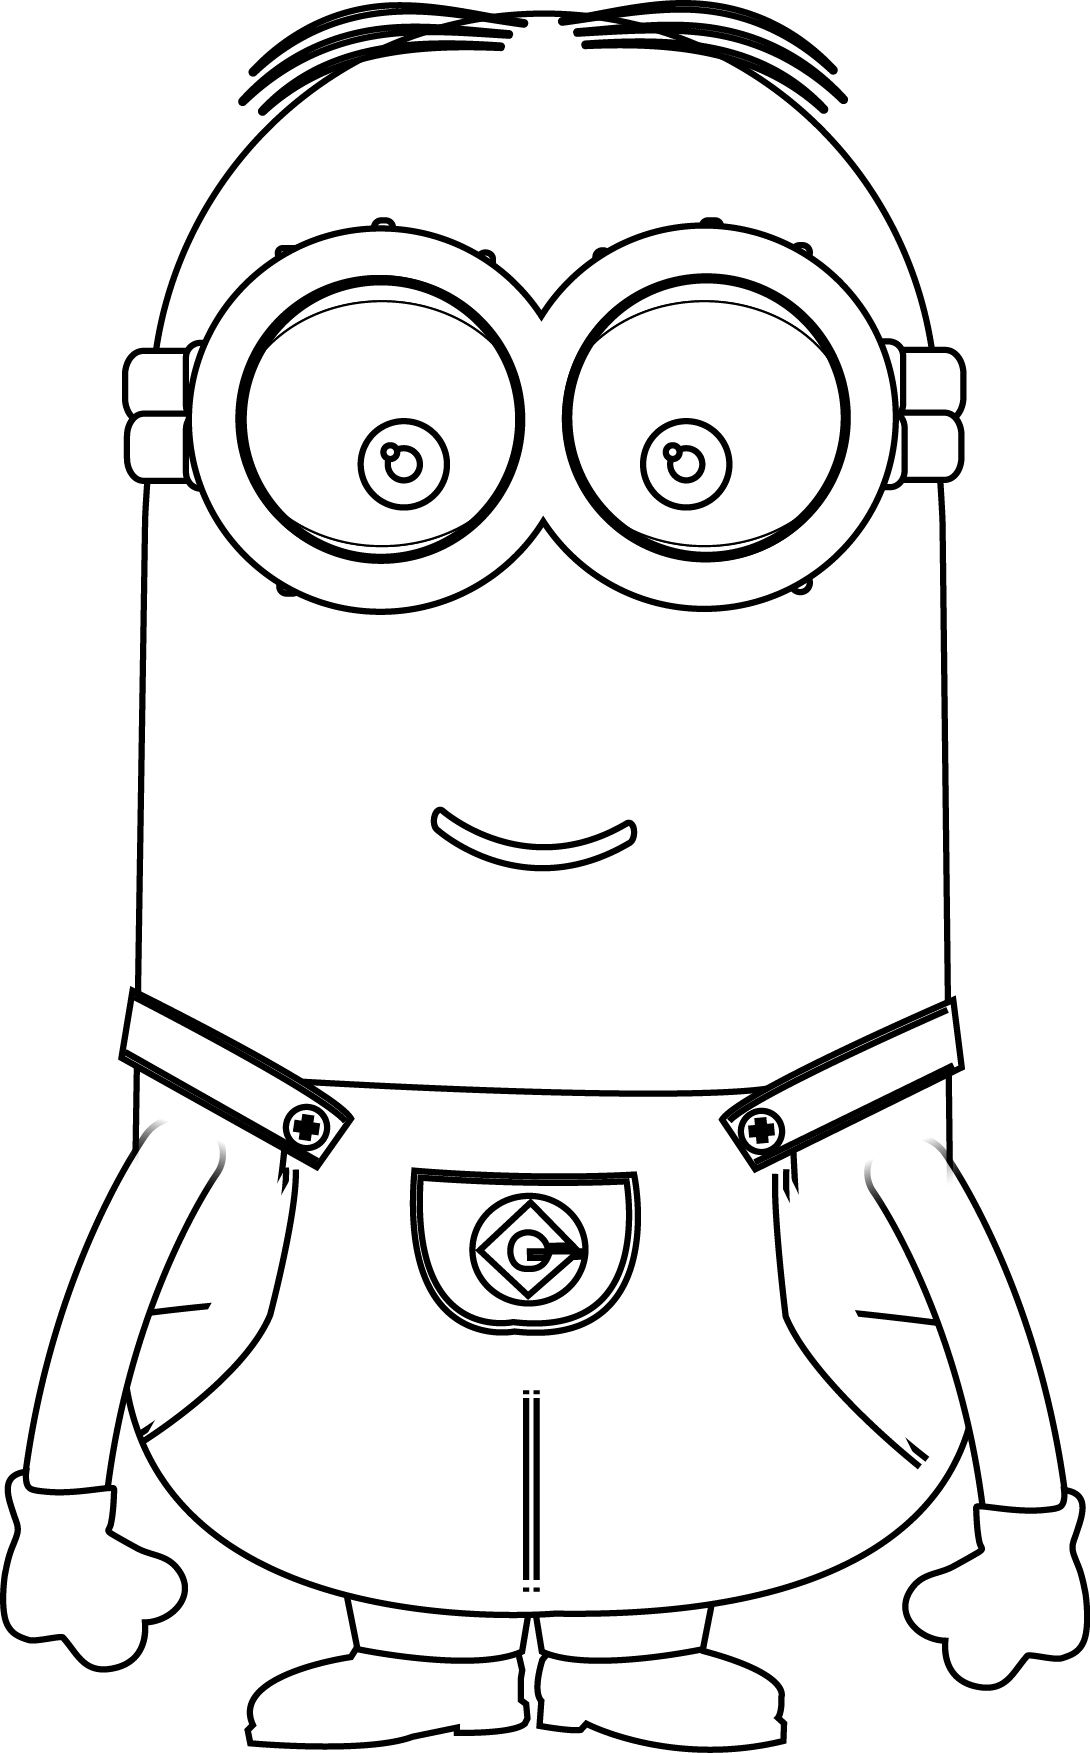 Minion maid coloring pages - Minions Kevin Perfect Coloring Page Wecoloringpage More